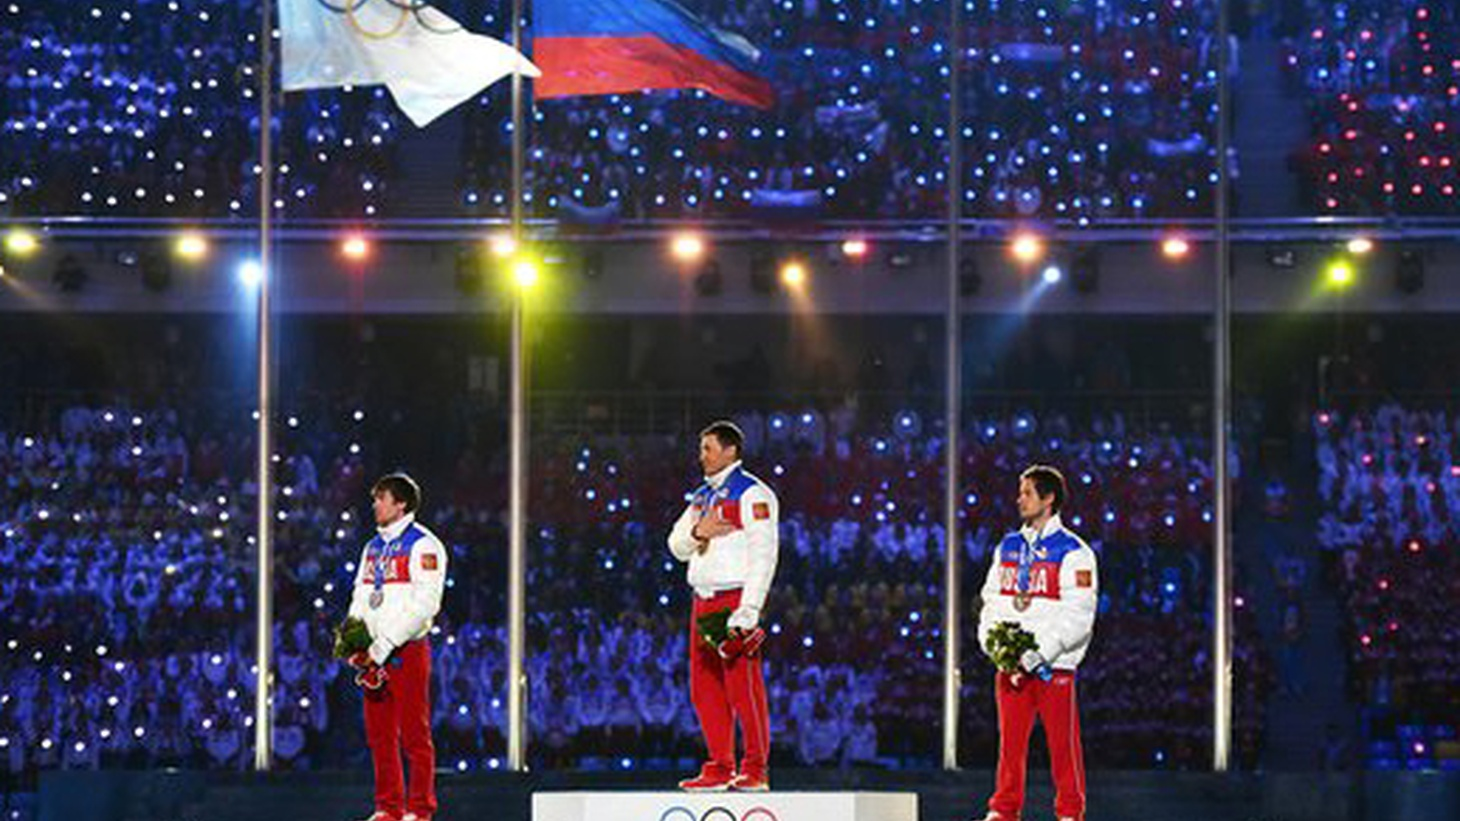 We update the latest developments in the Russian Olympic doping scandal, and the potential impact on this summer's games in Brazil. We hear from experts on anti-doping efforts and Olympic history, and an American athlete who might win a medal if her Russian opponent is disqualified.